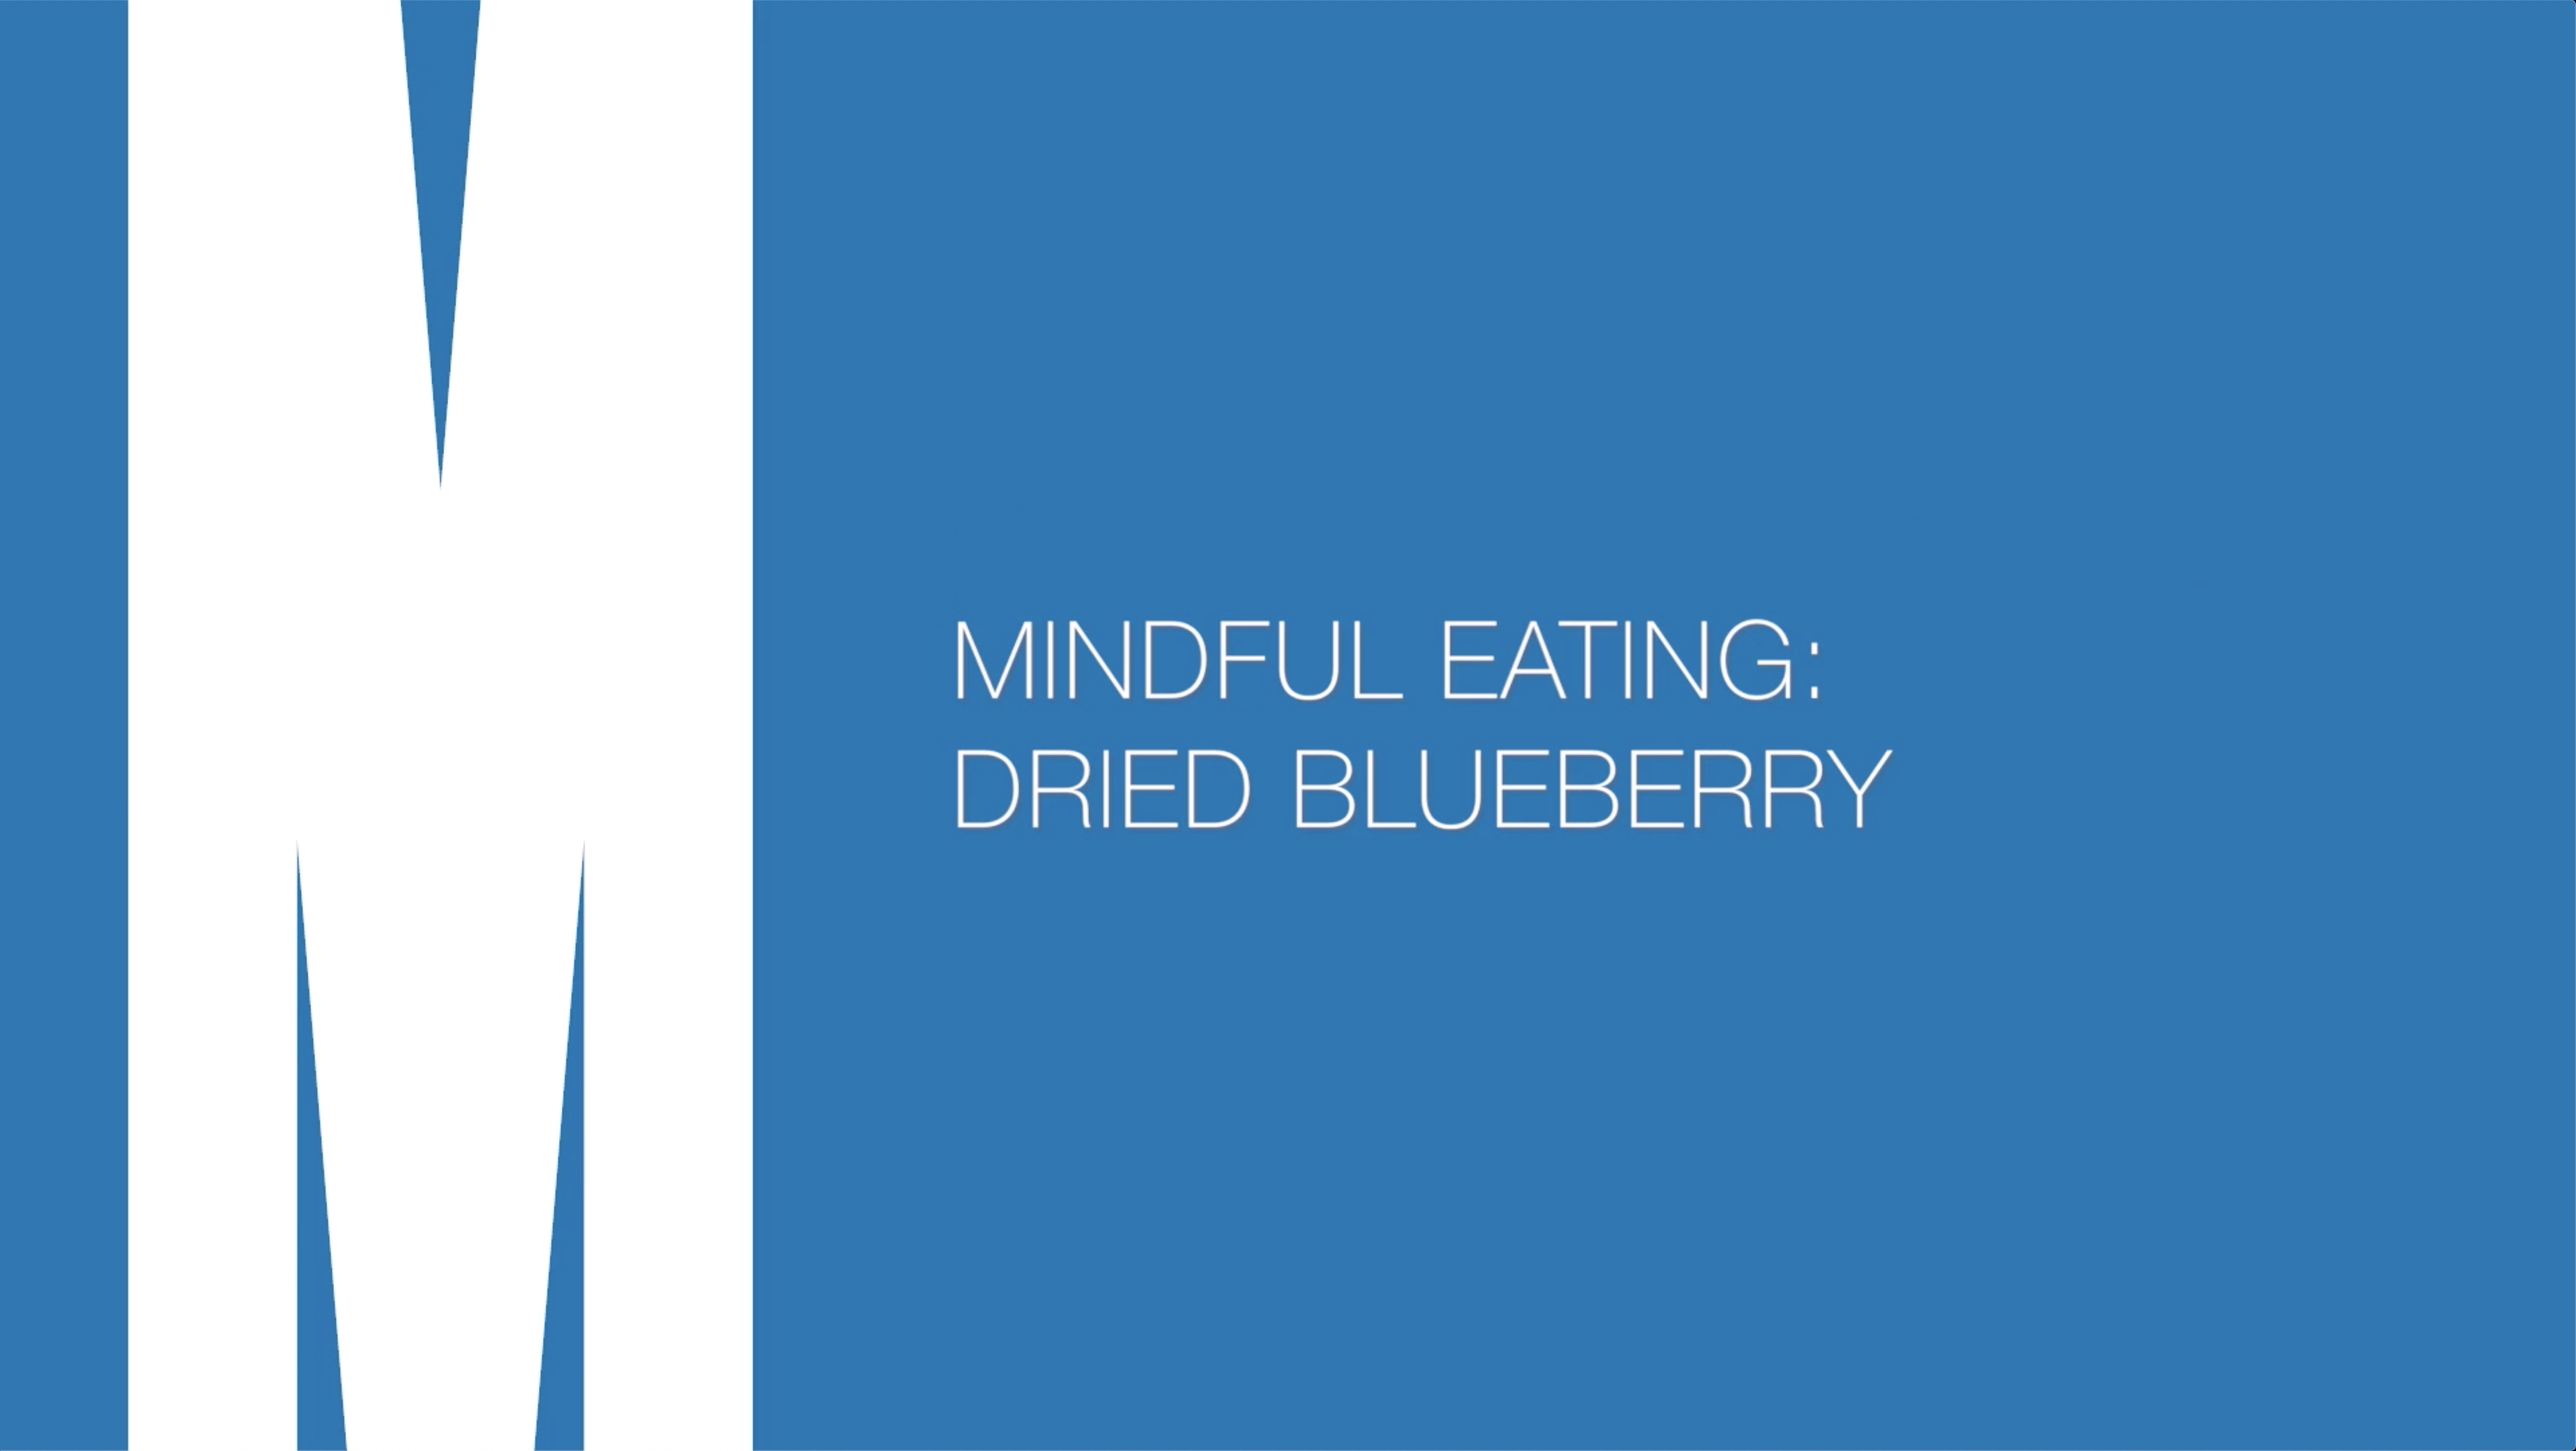 Mindful eating: Dried blueberry